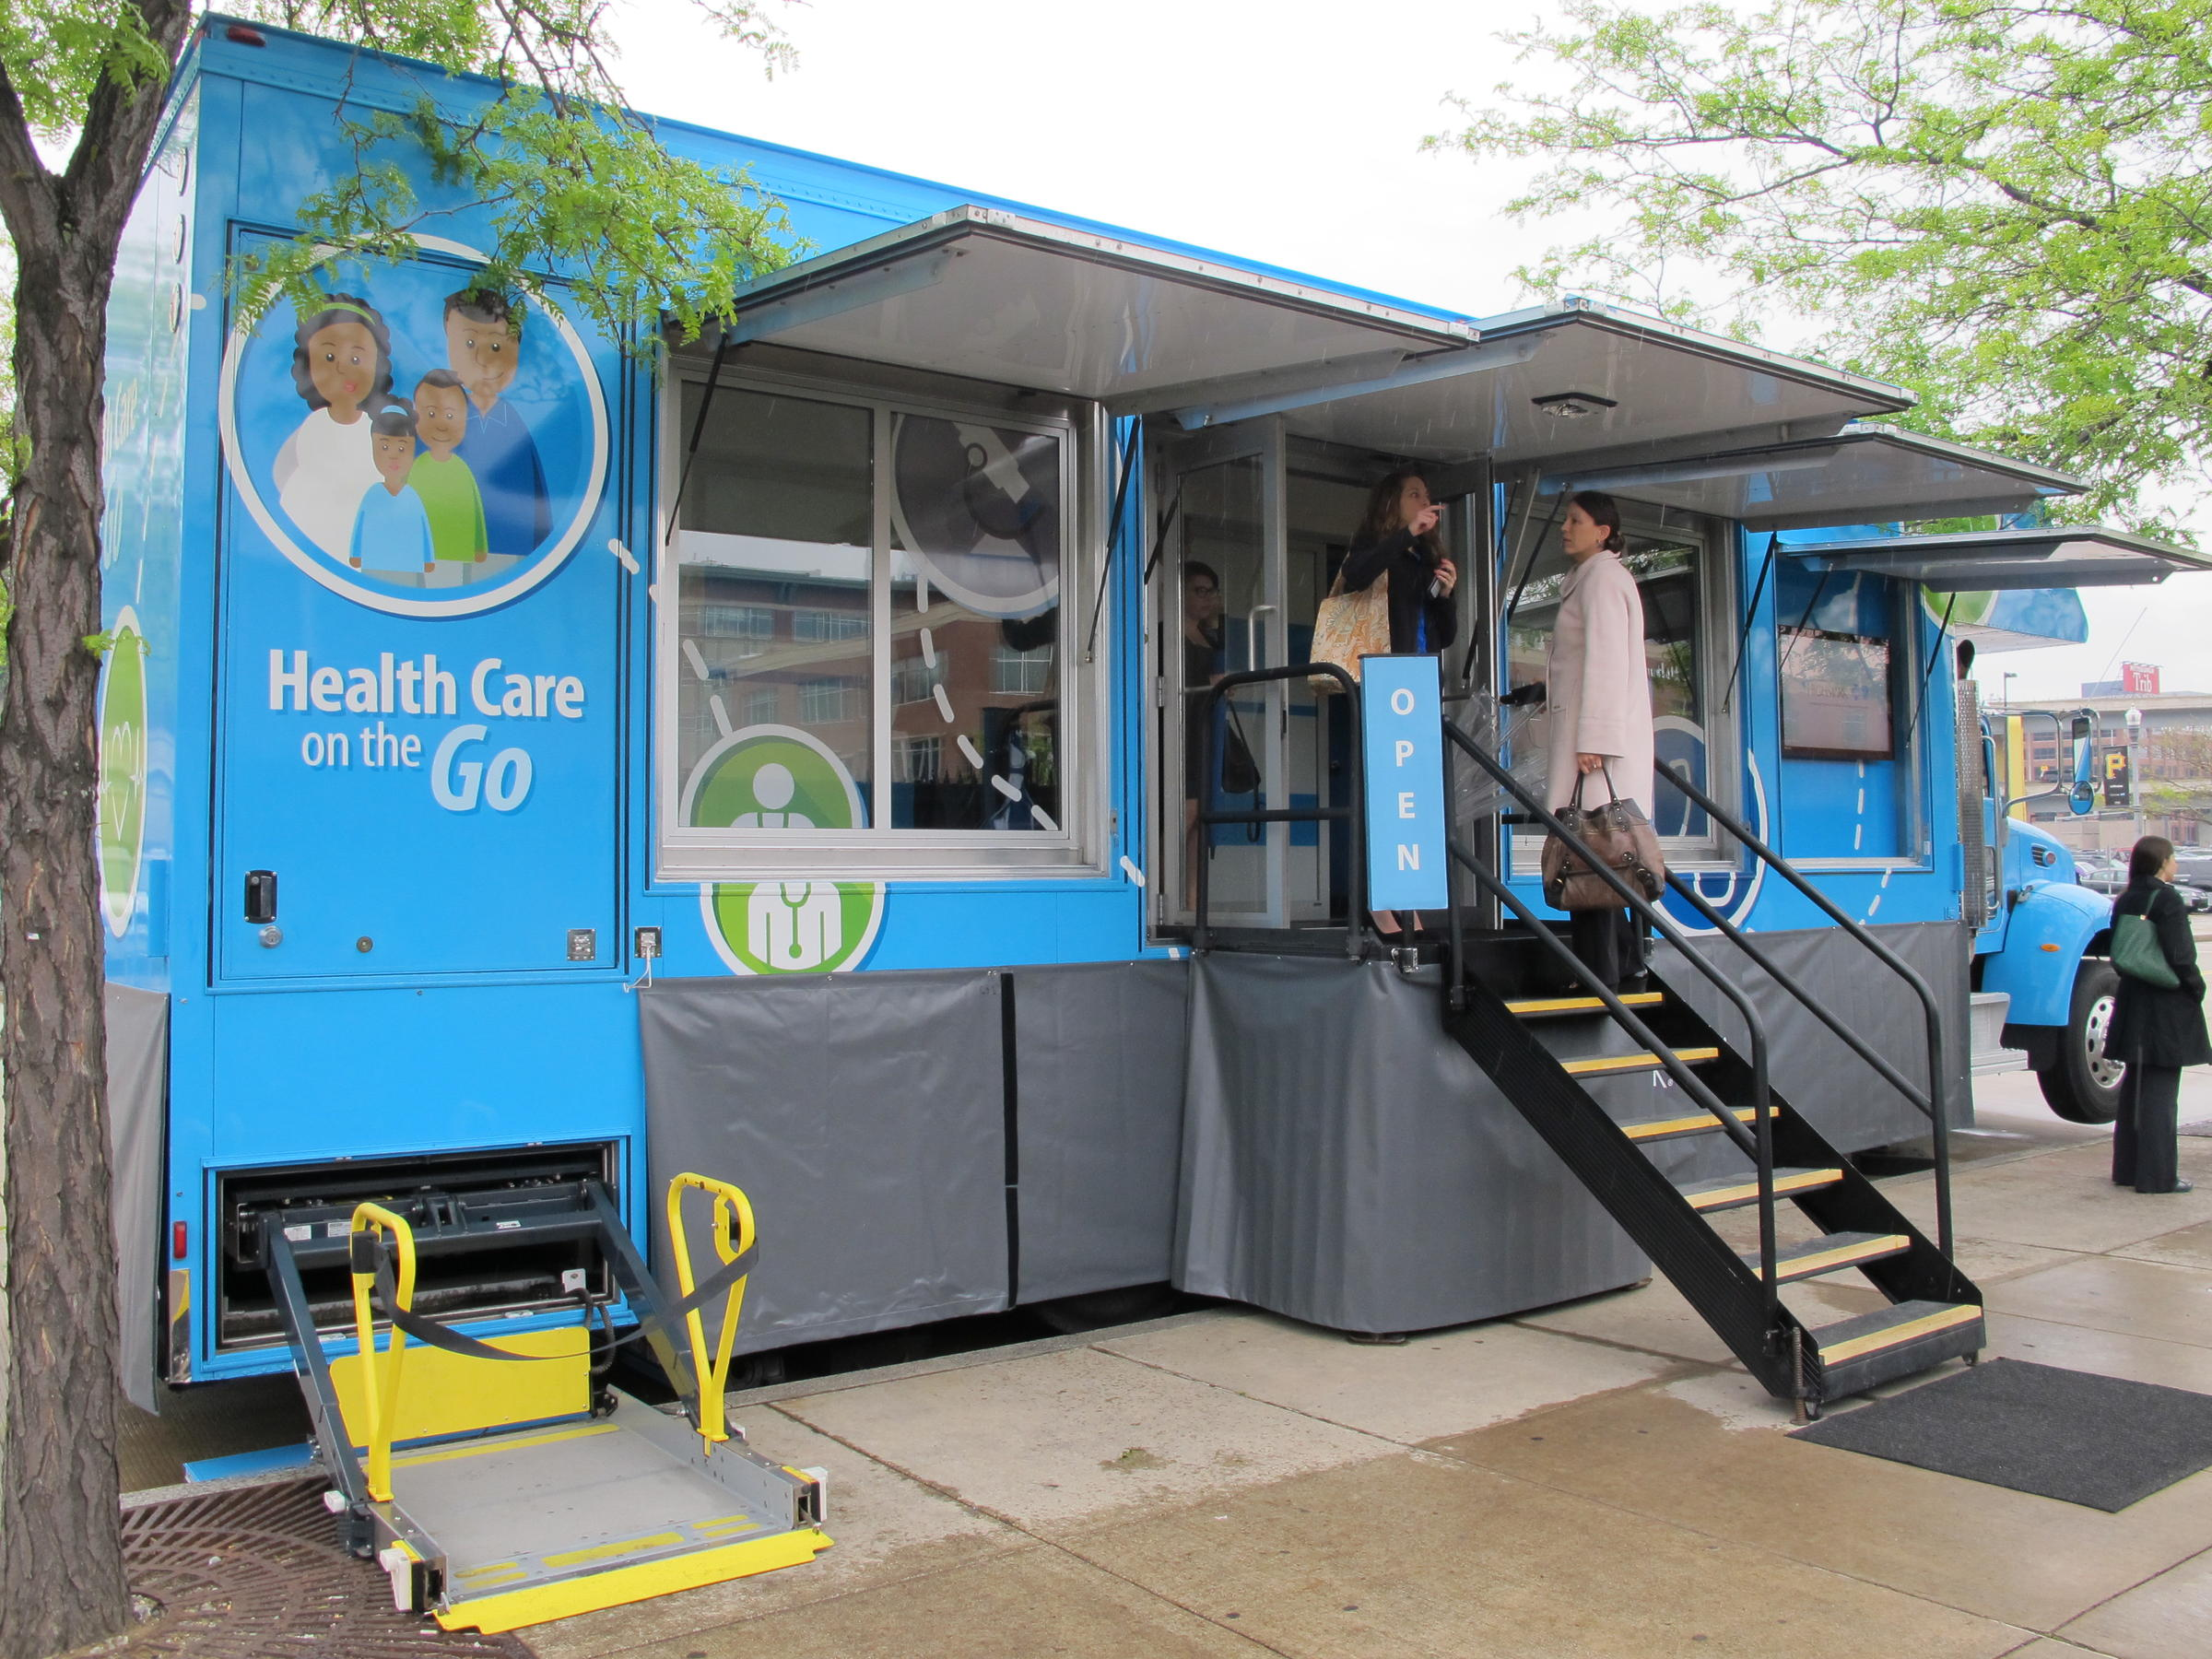 A Trip To The Doctor Takes New Meaning With Mobile Health Clinic